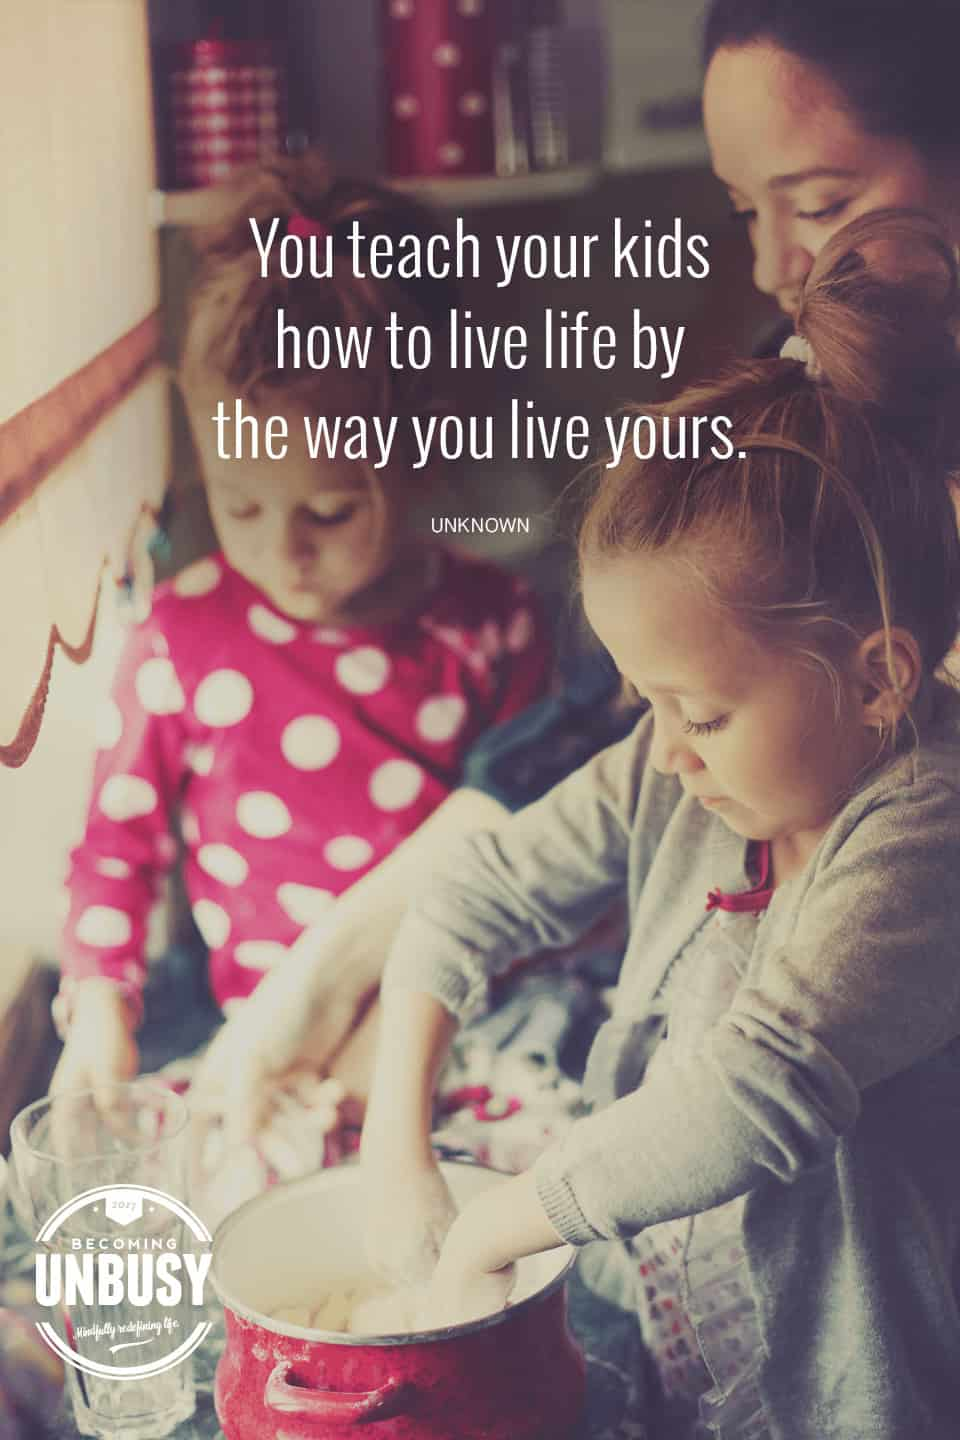 You teach your kids how to live life by the way you live yours. #quote #BecomingUnBusy *Love this video and site